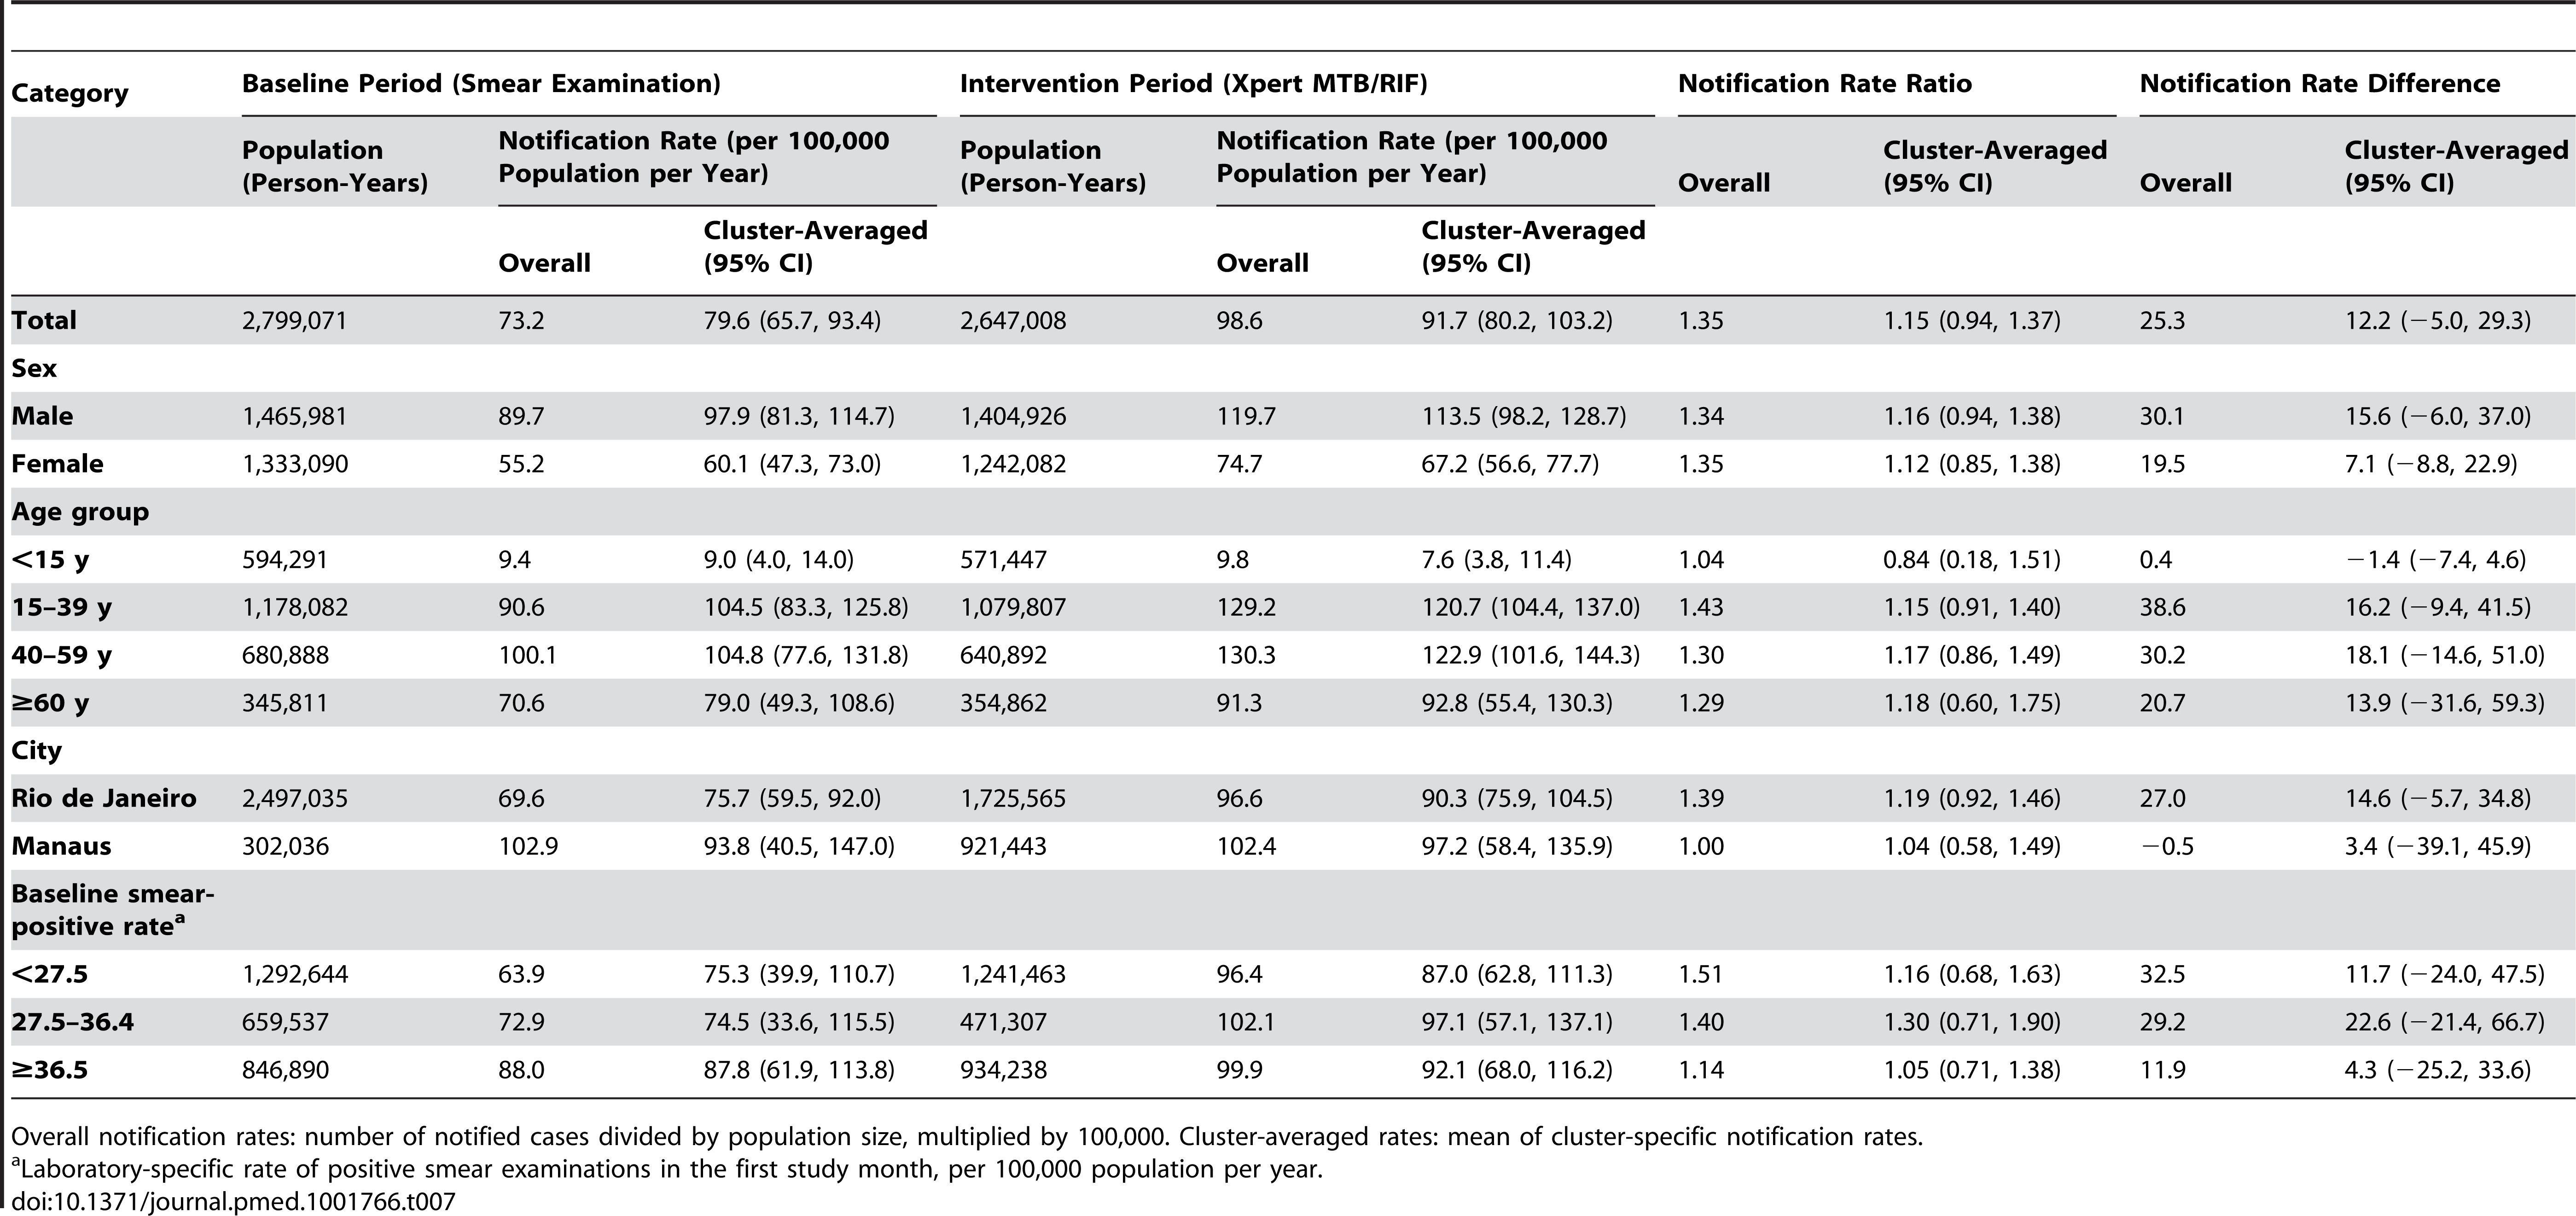 Notifications of overall pulmonary tuberculosis, regardless of test result.